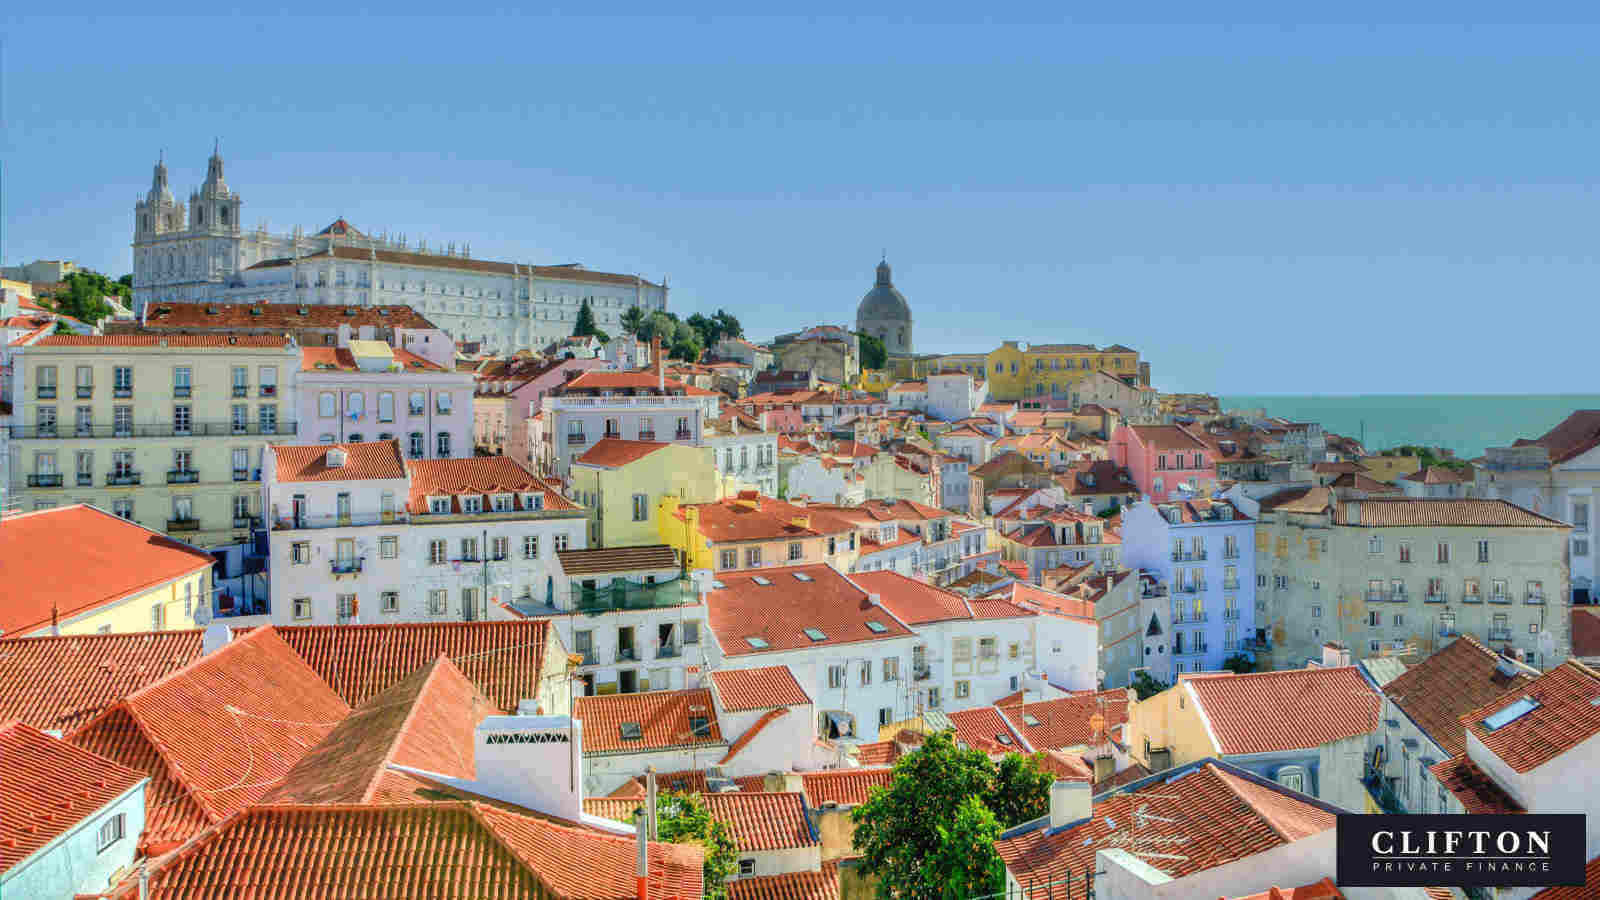 UK expat living in Portugal? 4 ways we help with a UK mortgage